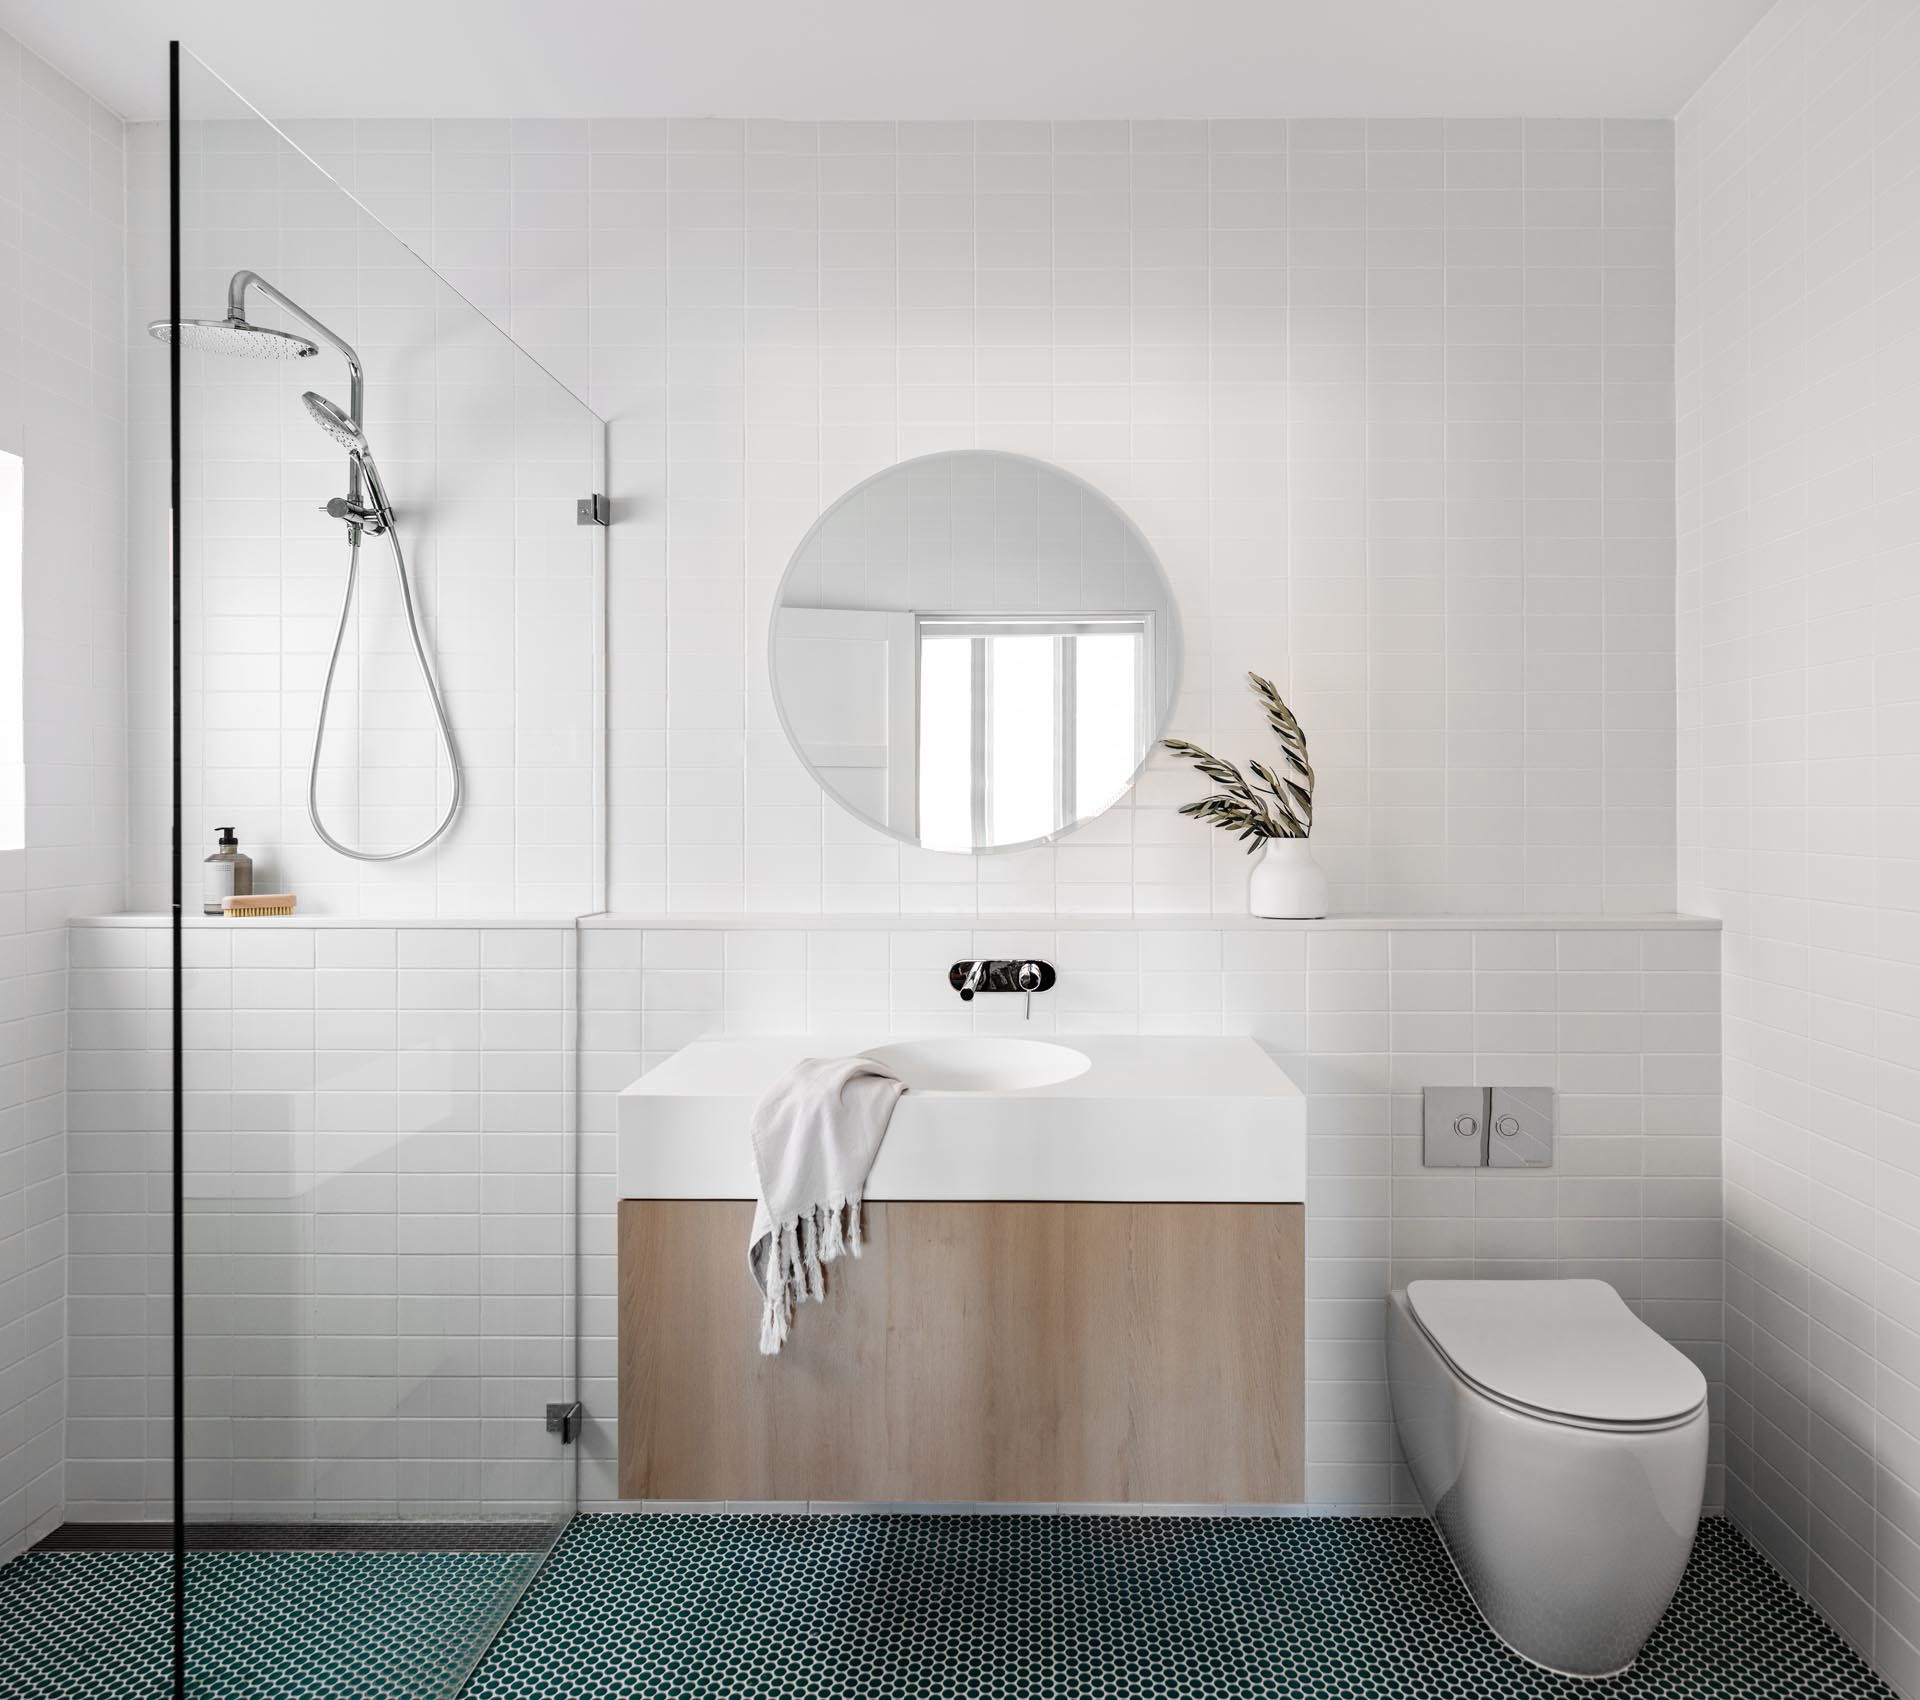 A modern bathroom with white wall tiles, white grout, a round mirror, a wood vanity with thick white countertop, and dark green penny tile flooring.